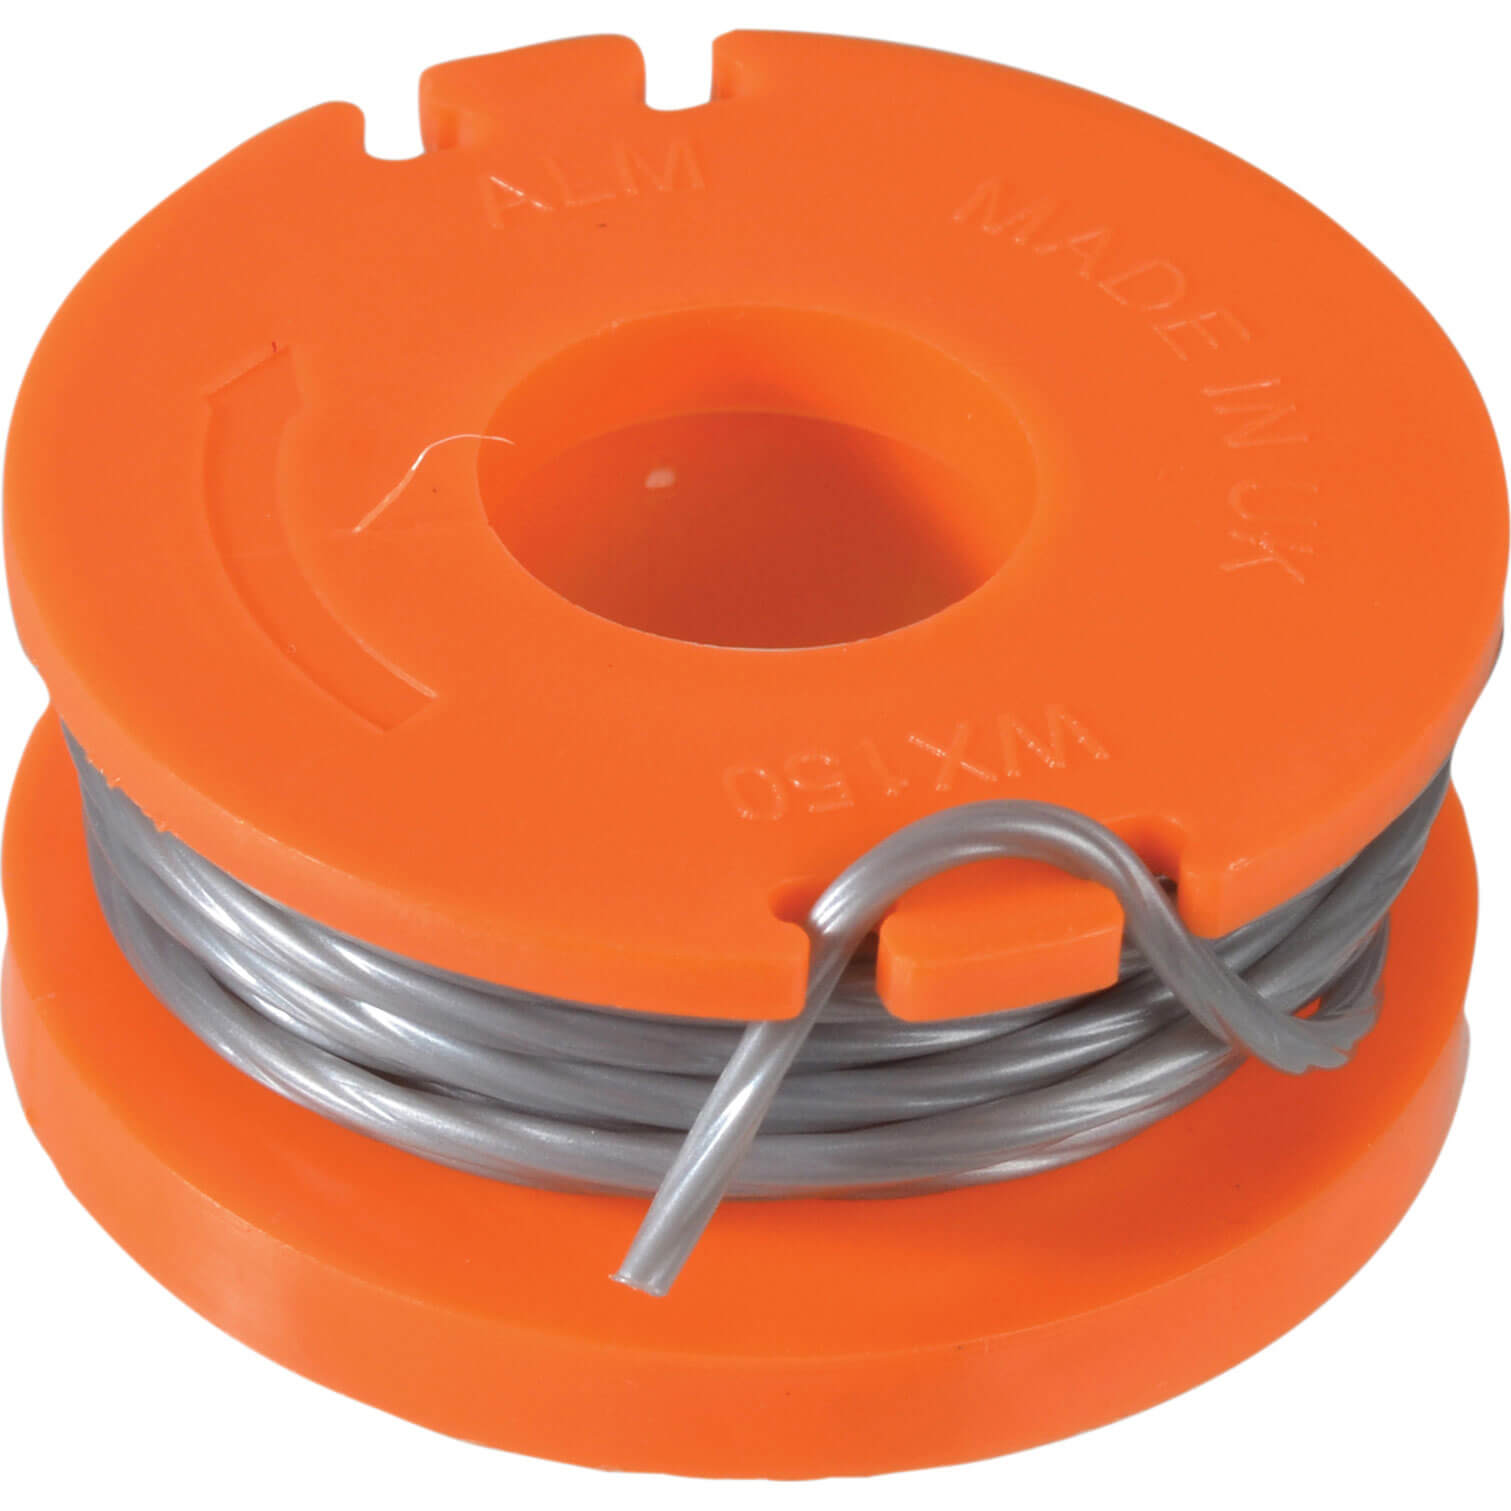 Image of ALM 1.5mm x 2.5m Spool & Line for Various Qualcast 18v Grass Trimmers Pack of 1